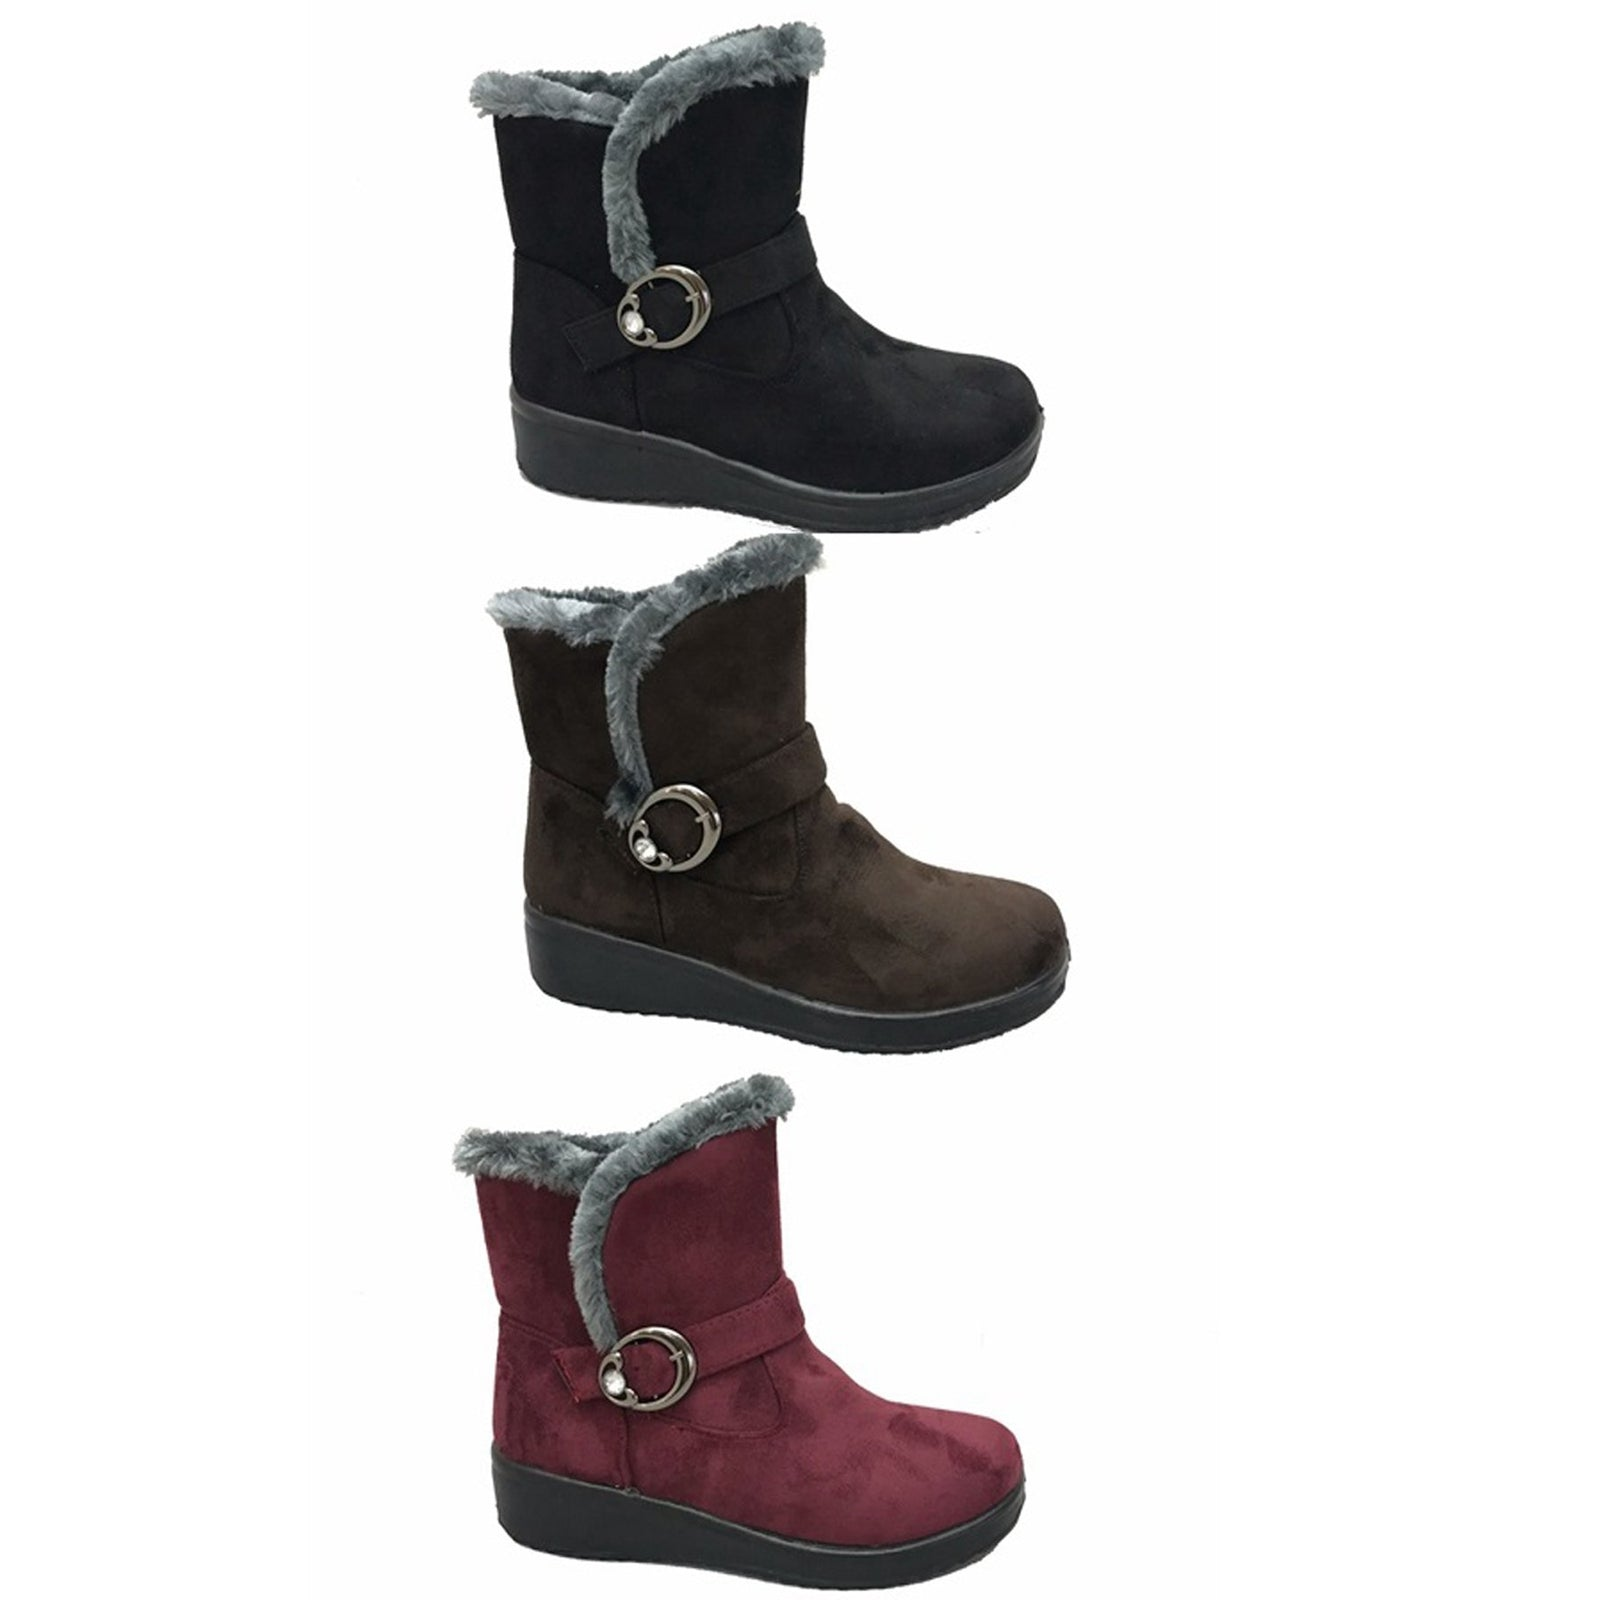 Wholesale Women's Shoes Boots Ugg NCP82